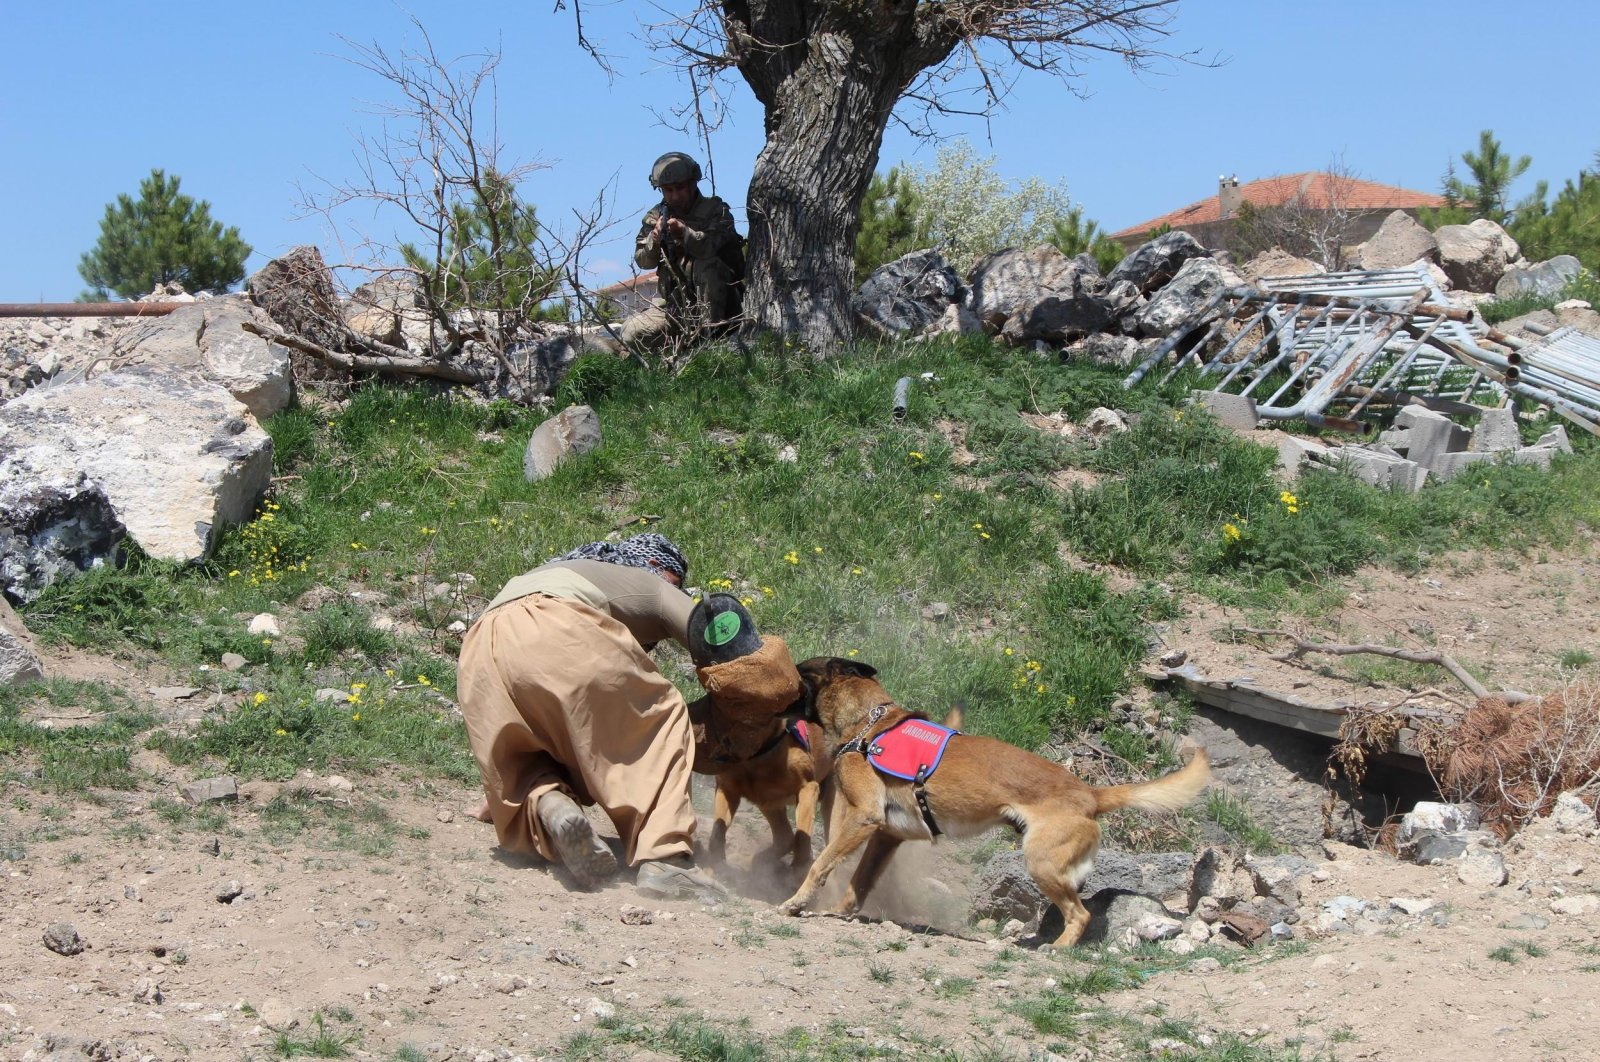 Trained dogs and gendarmerie forces are seen during a drill in central Turkey's Nevşehir province, April 22, 2021. (IHA Photo)